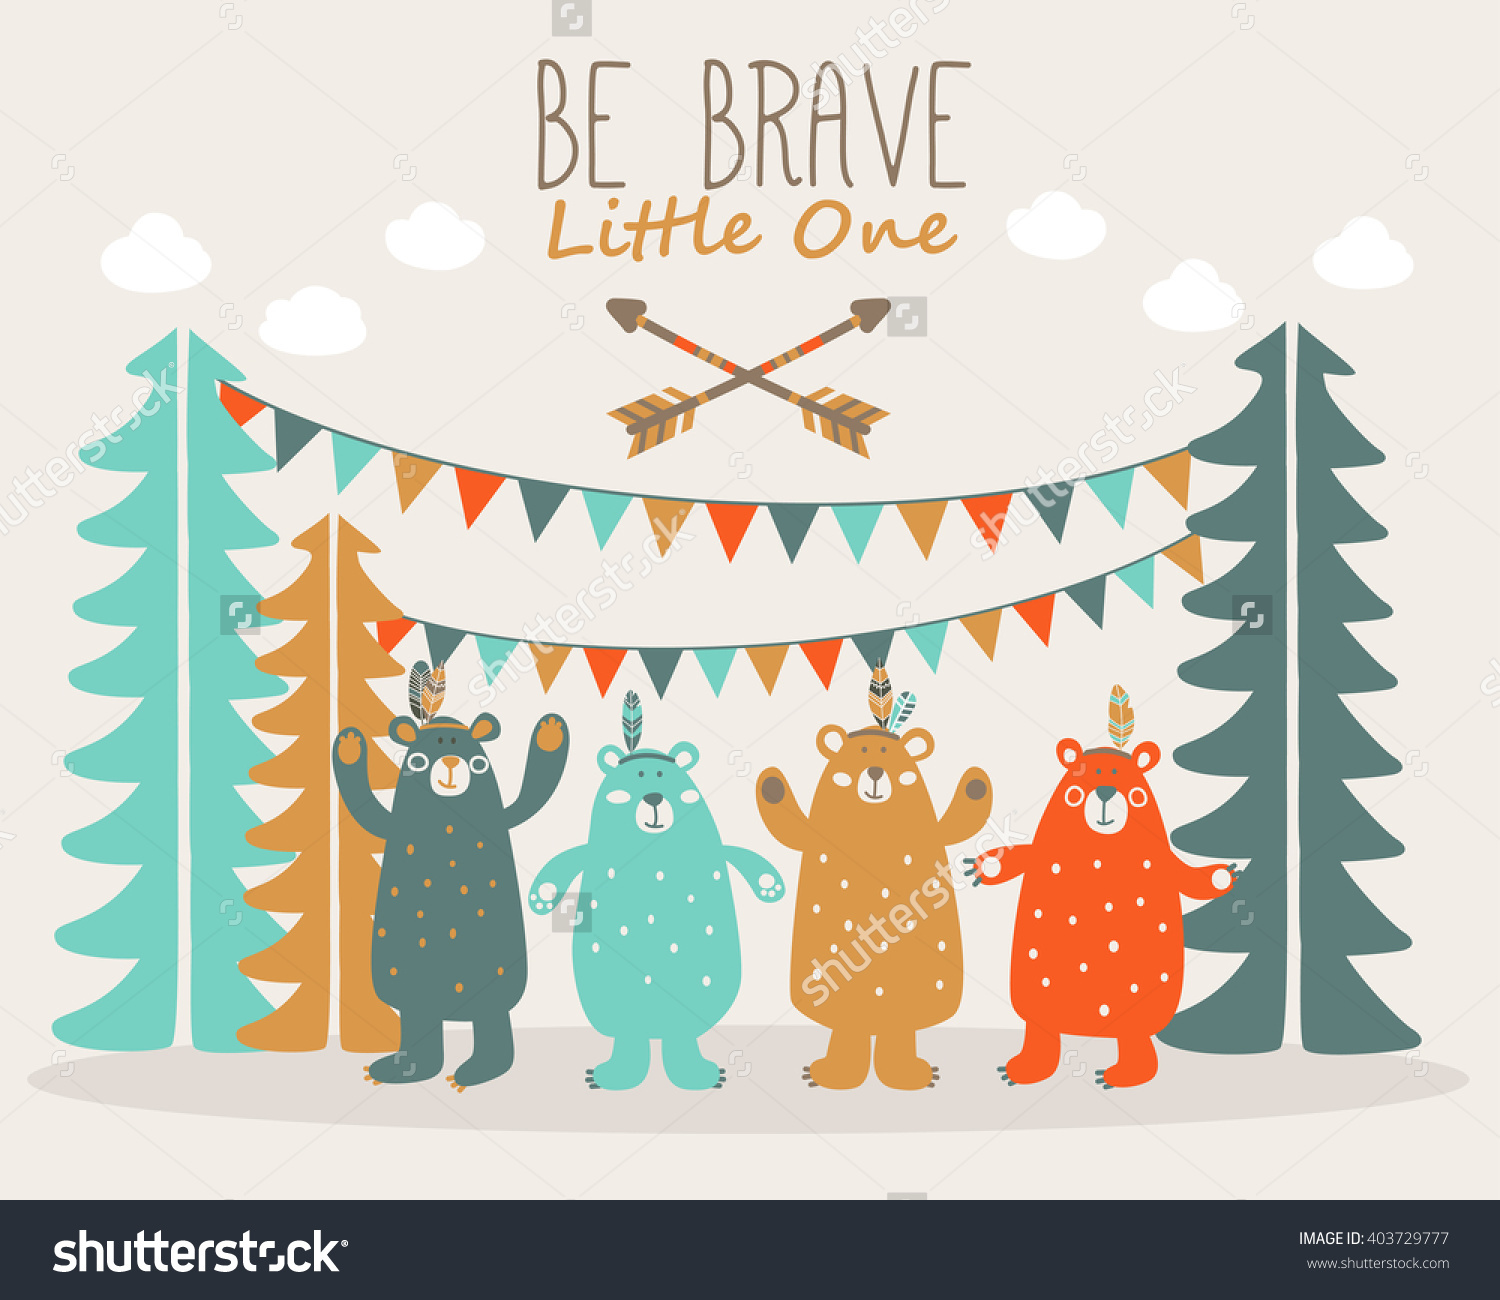 Be Brave Little One Cute Poster Stock Vector 403729777.